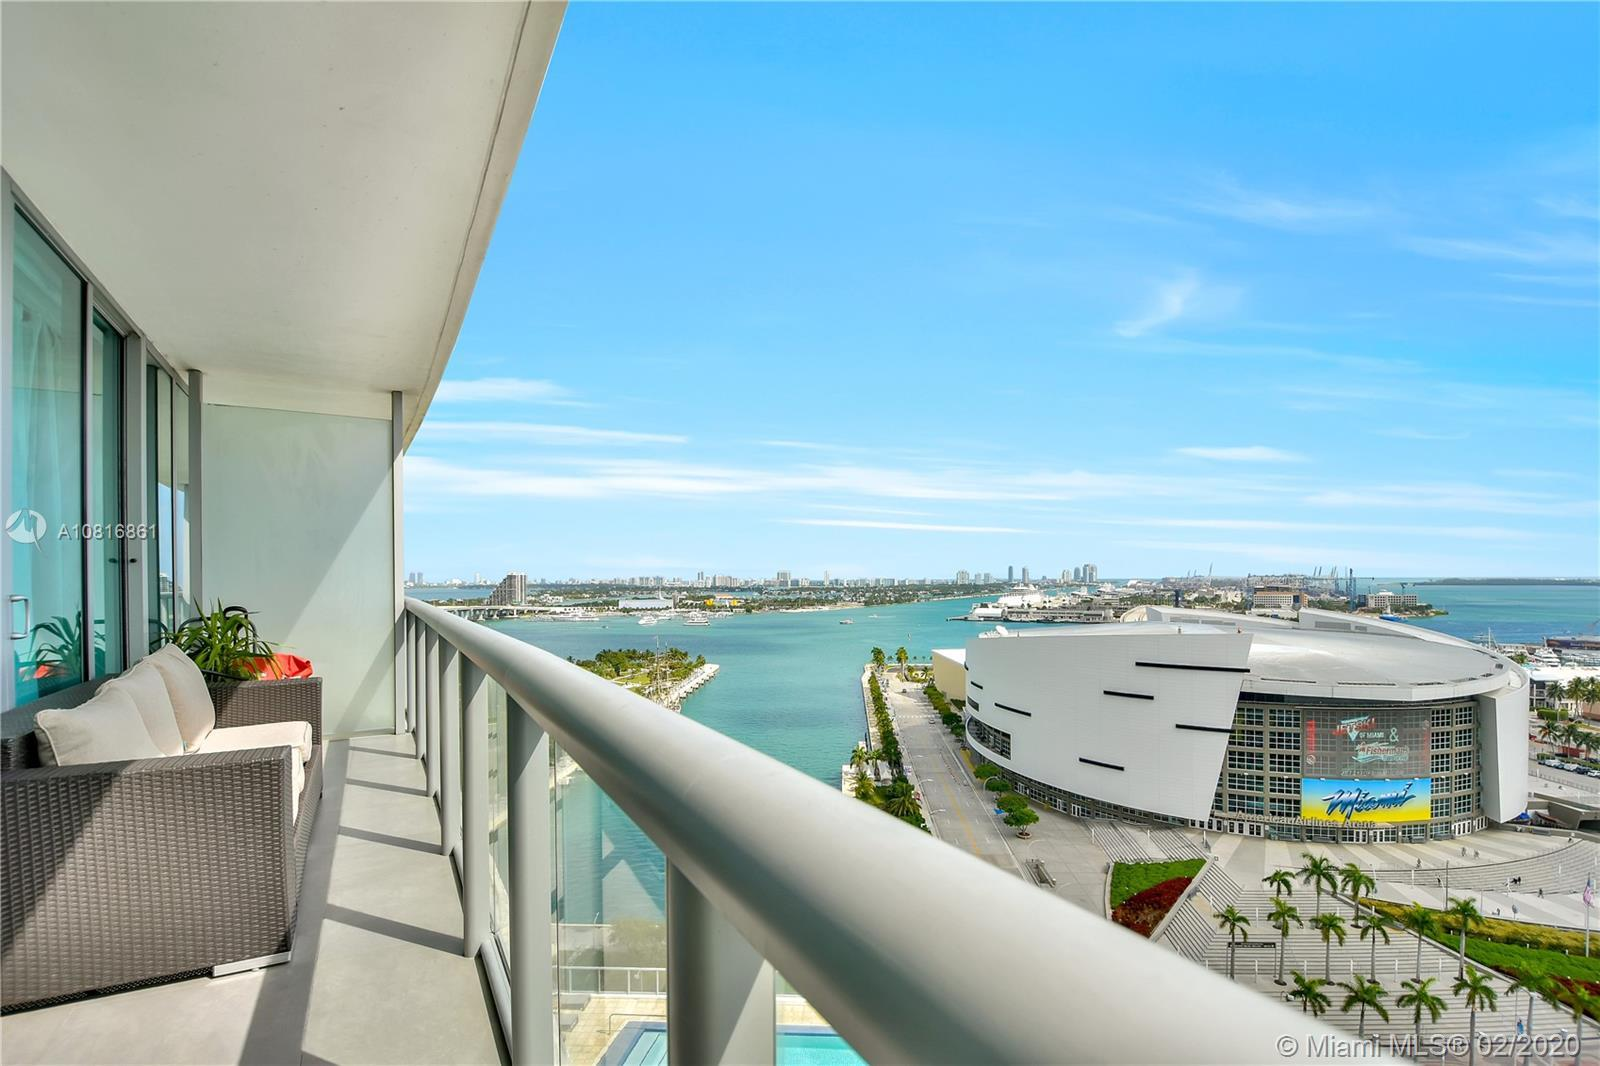 Gorgeous panoramic views of Biscayne Bay, Miami Beach, the Port of Miami, and the Atlantic Ocean in